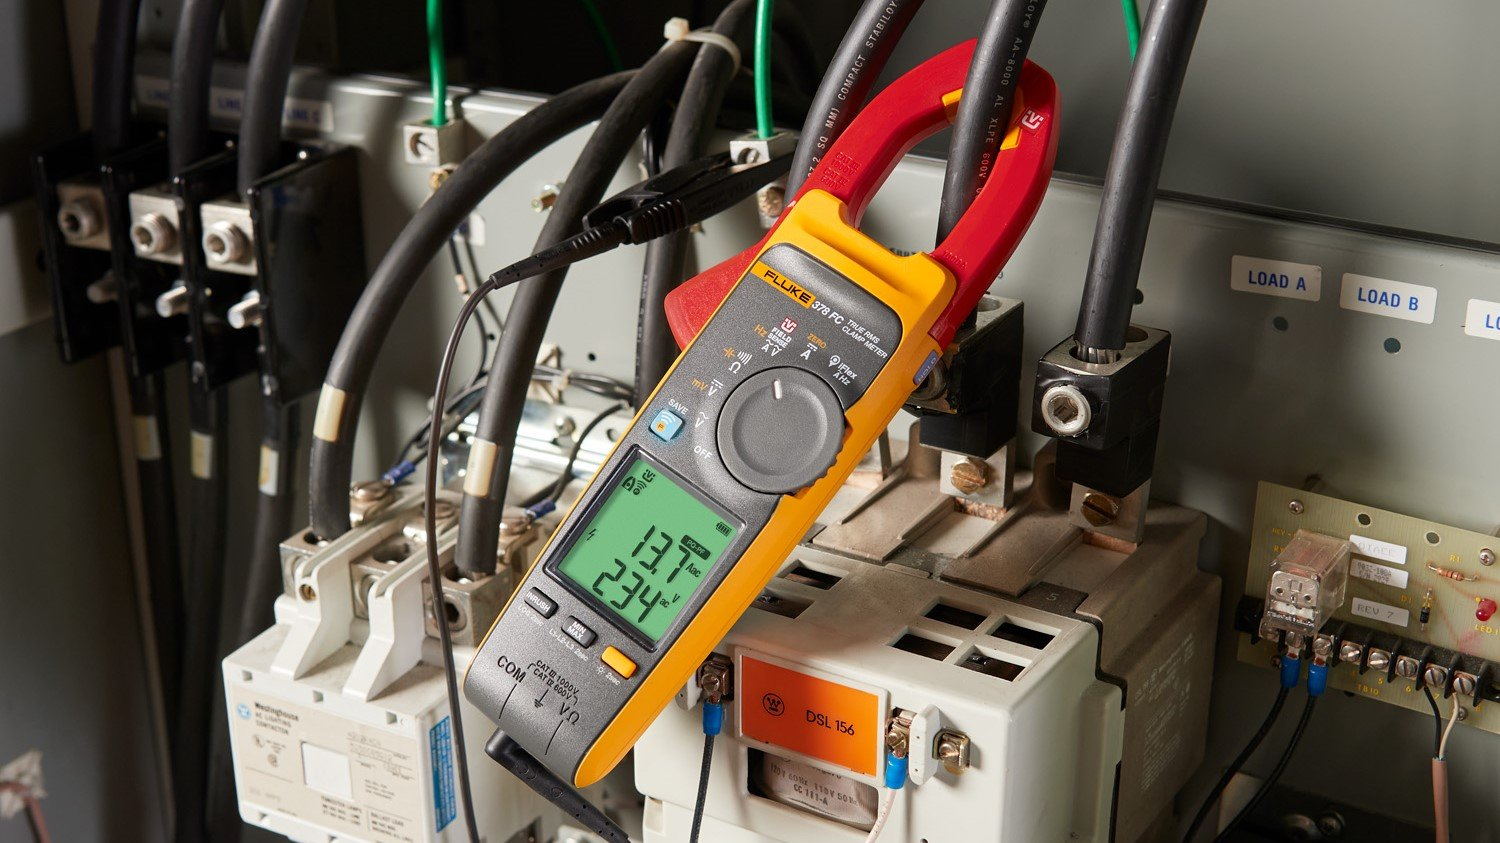 The Fluke 378 FC in PQ-PF mode.